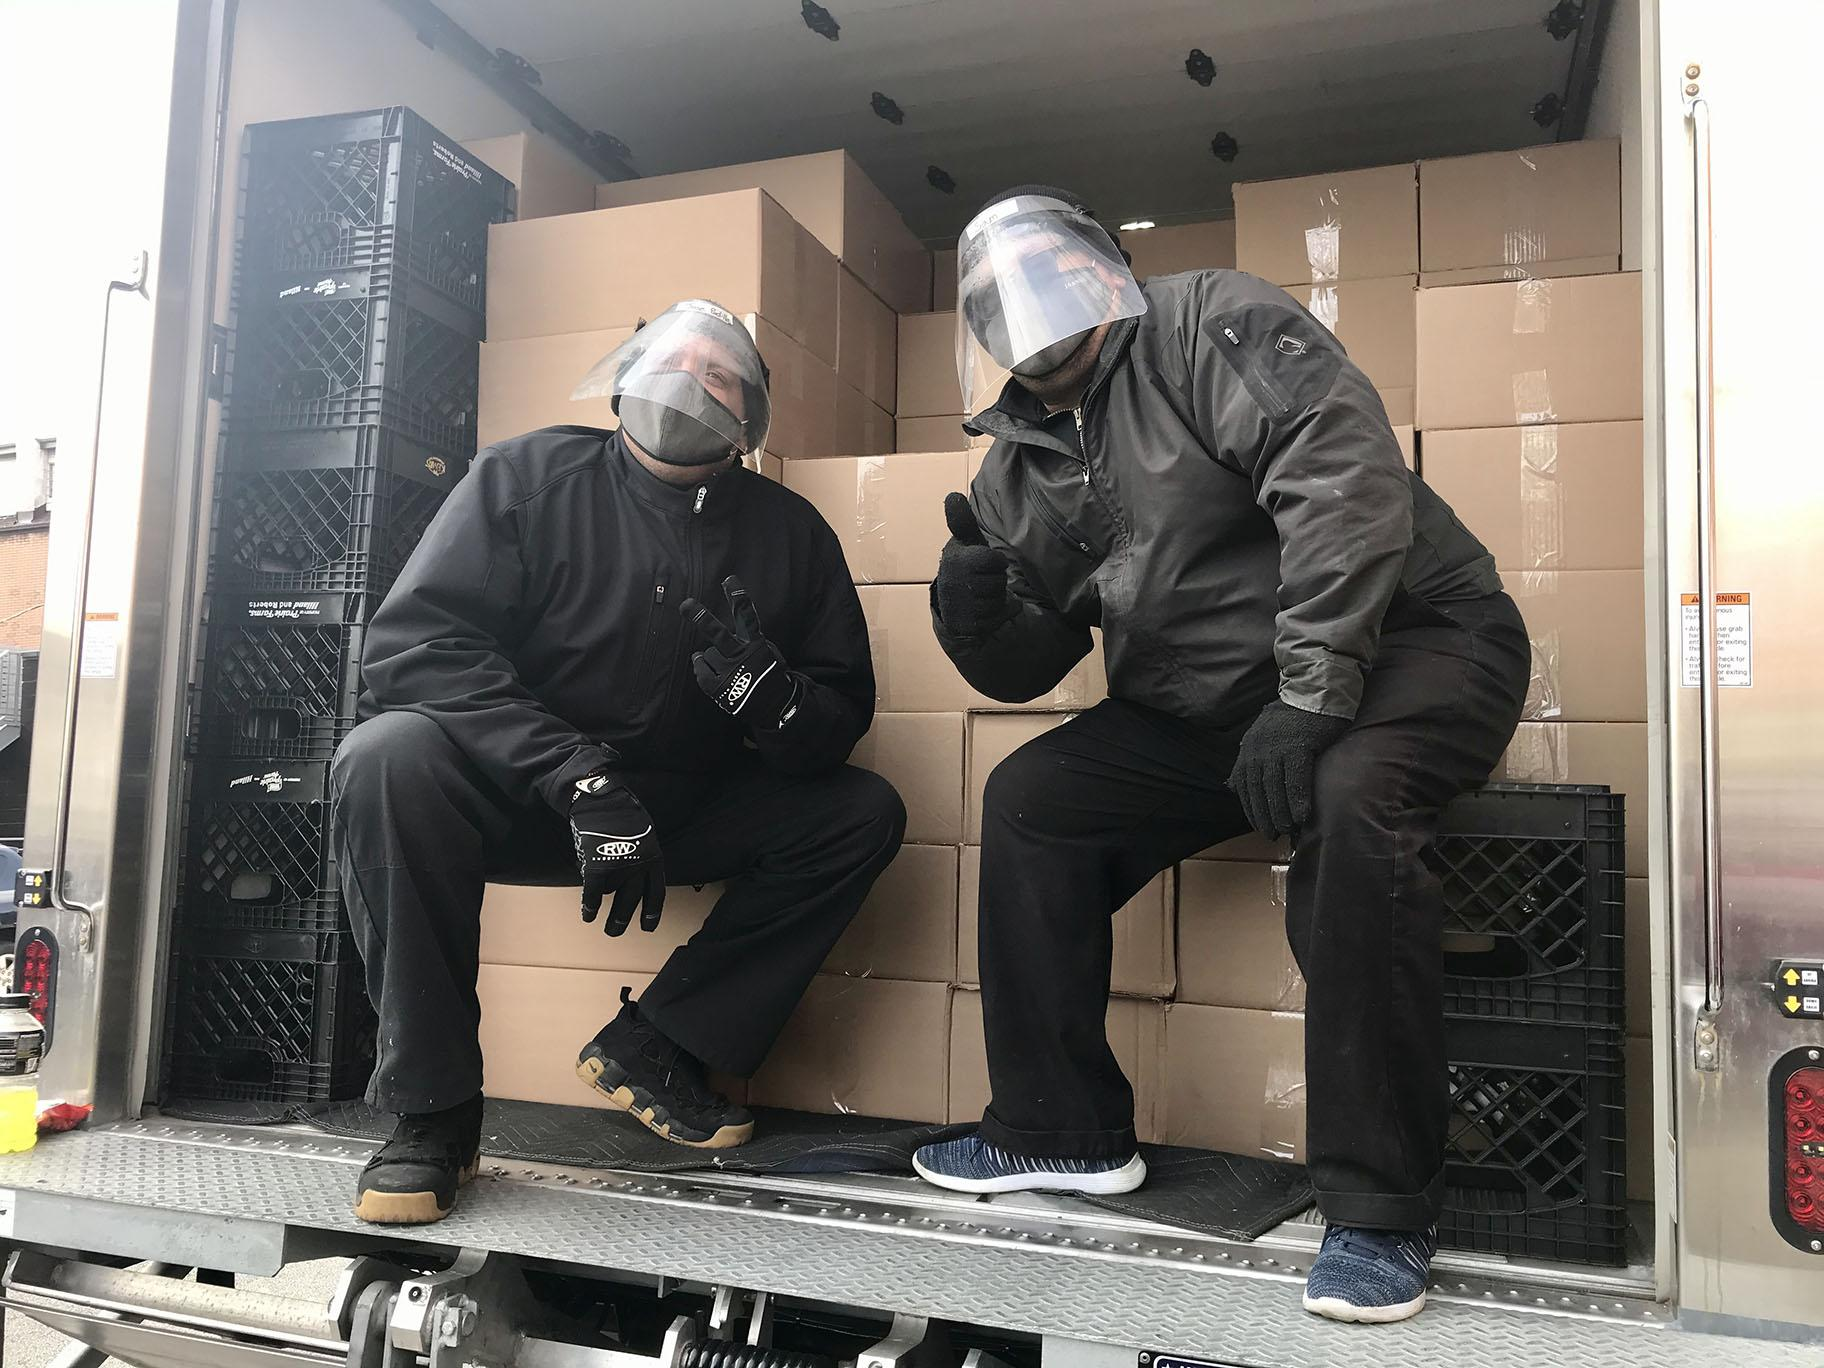 Catering by Michaels delivery truck drivers Sam Espada and Jose Padilla pose for a photo on Saturday, Nov. 21, 2020. (Ariel Parrella-Aureli / WTTW News)